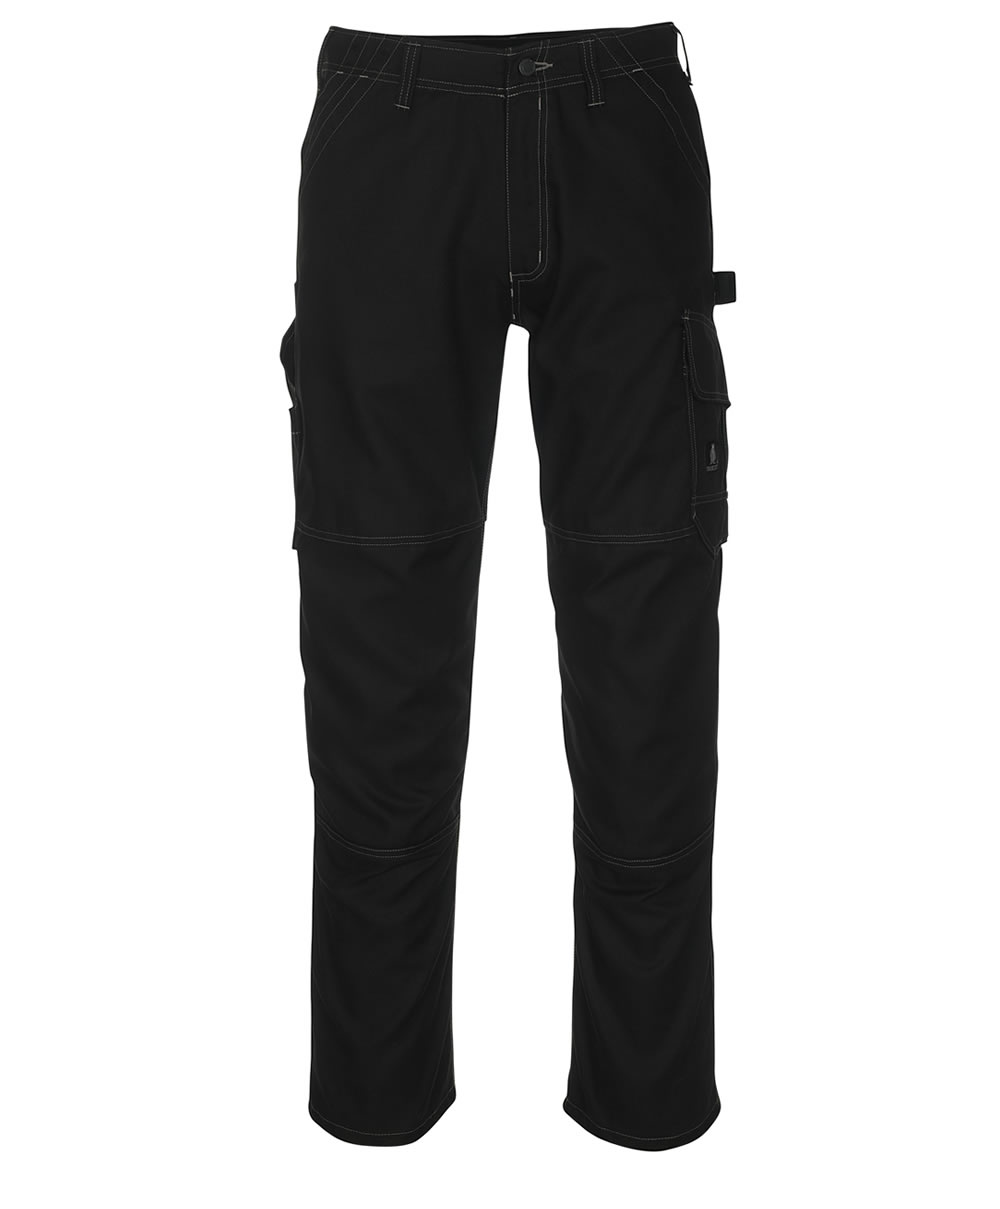 MASCOT TOTANA TROUSERS